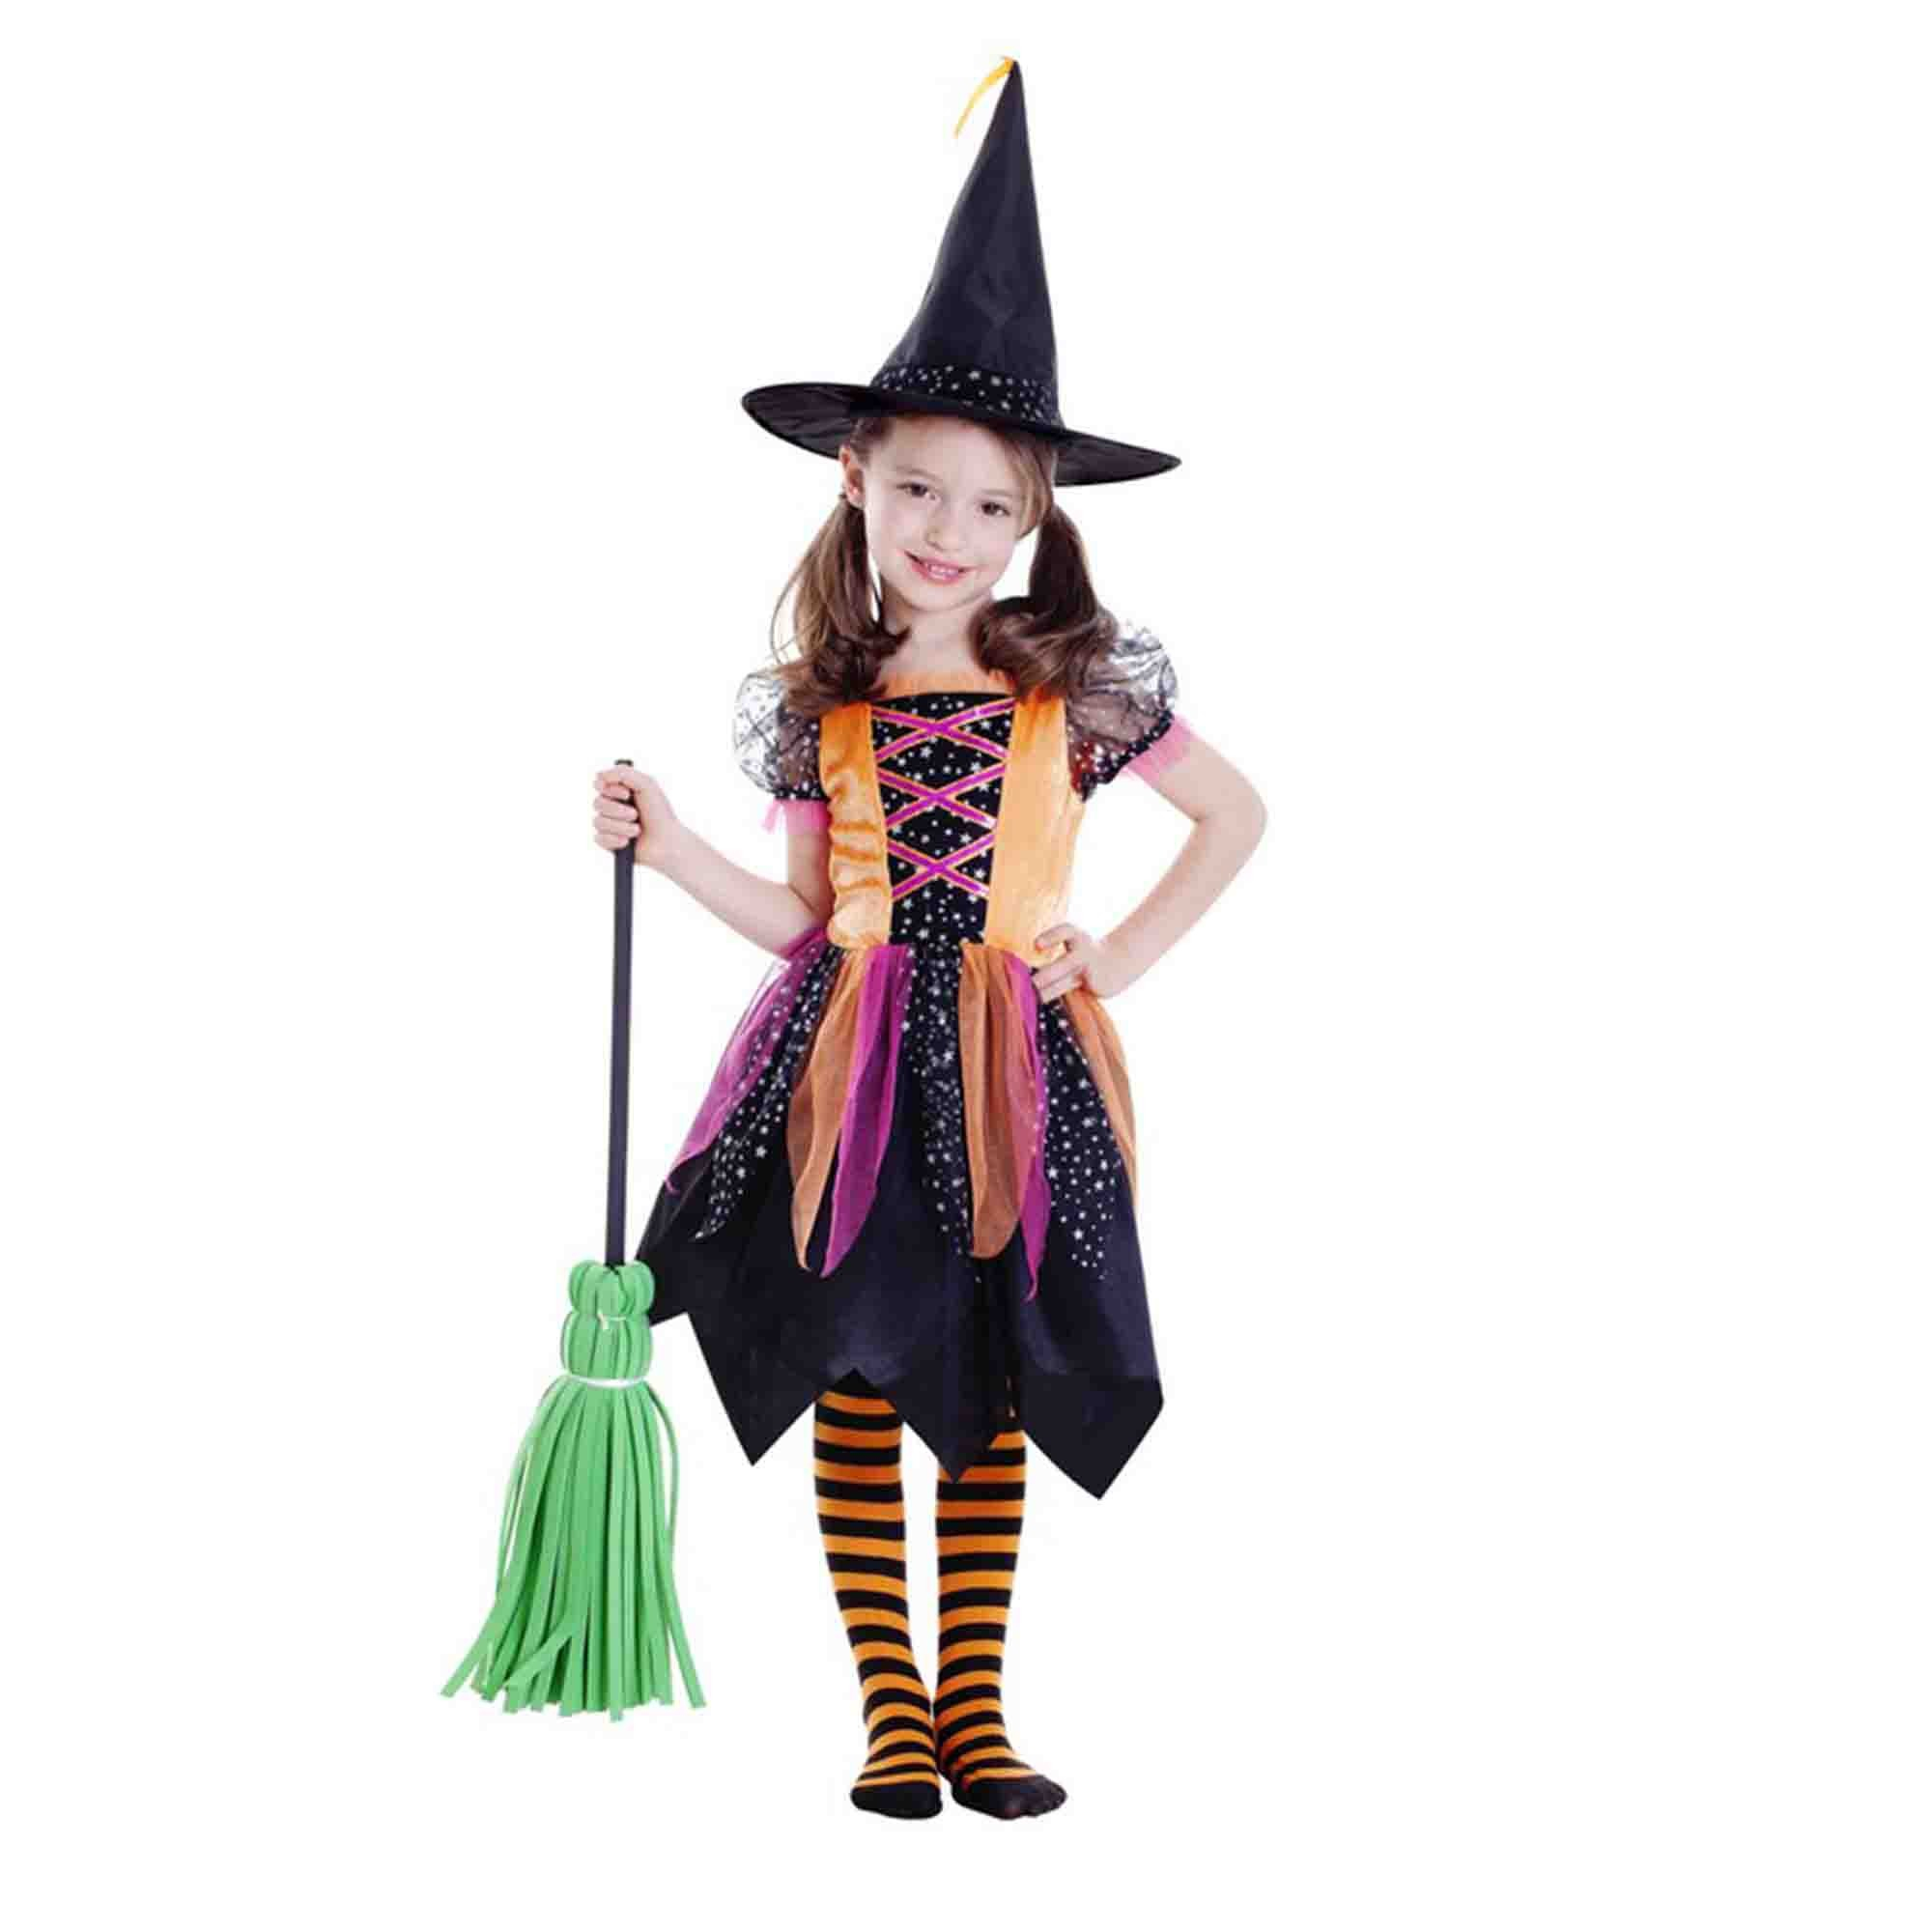 Deluxe Witch Girl Costume (Large) 6-8 yrs